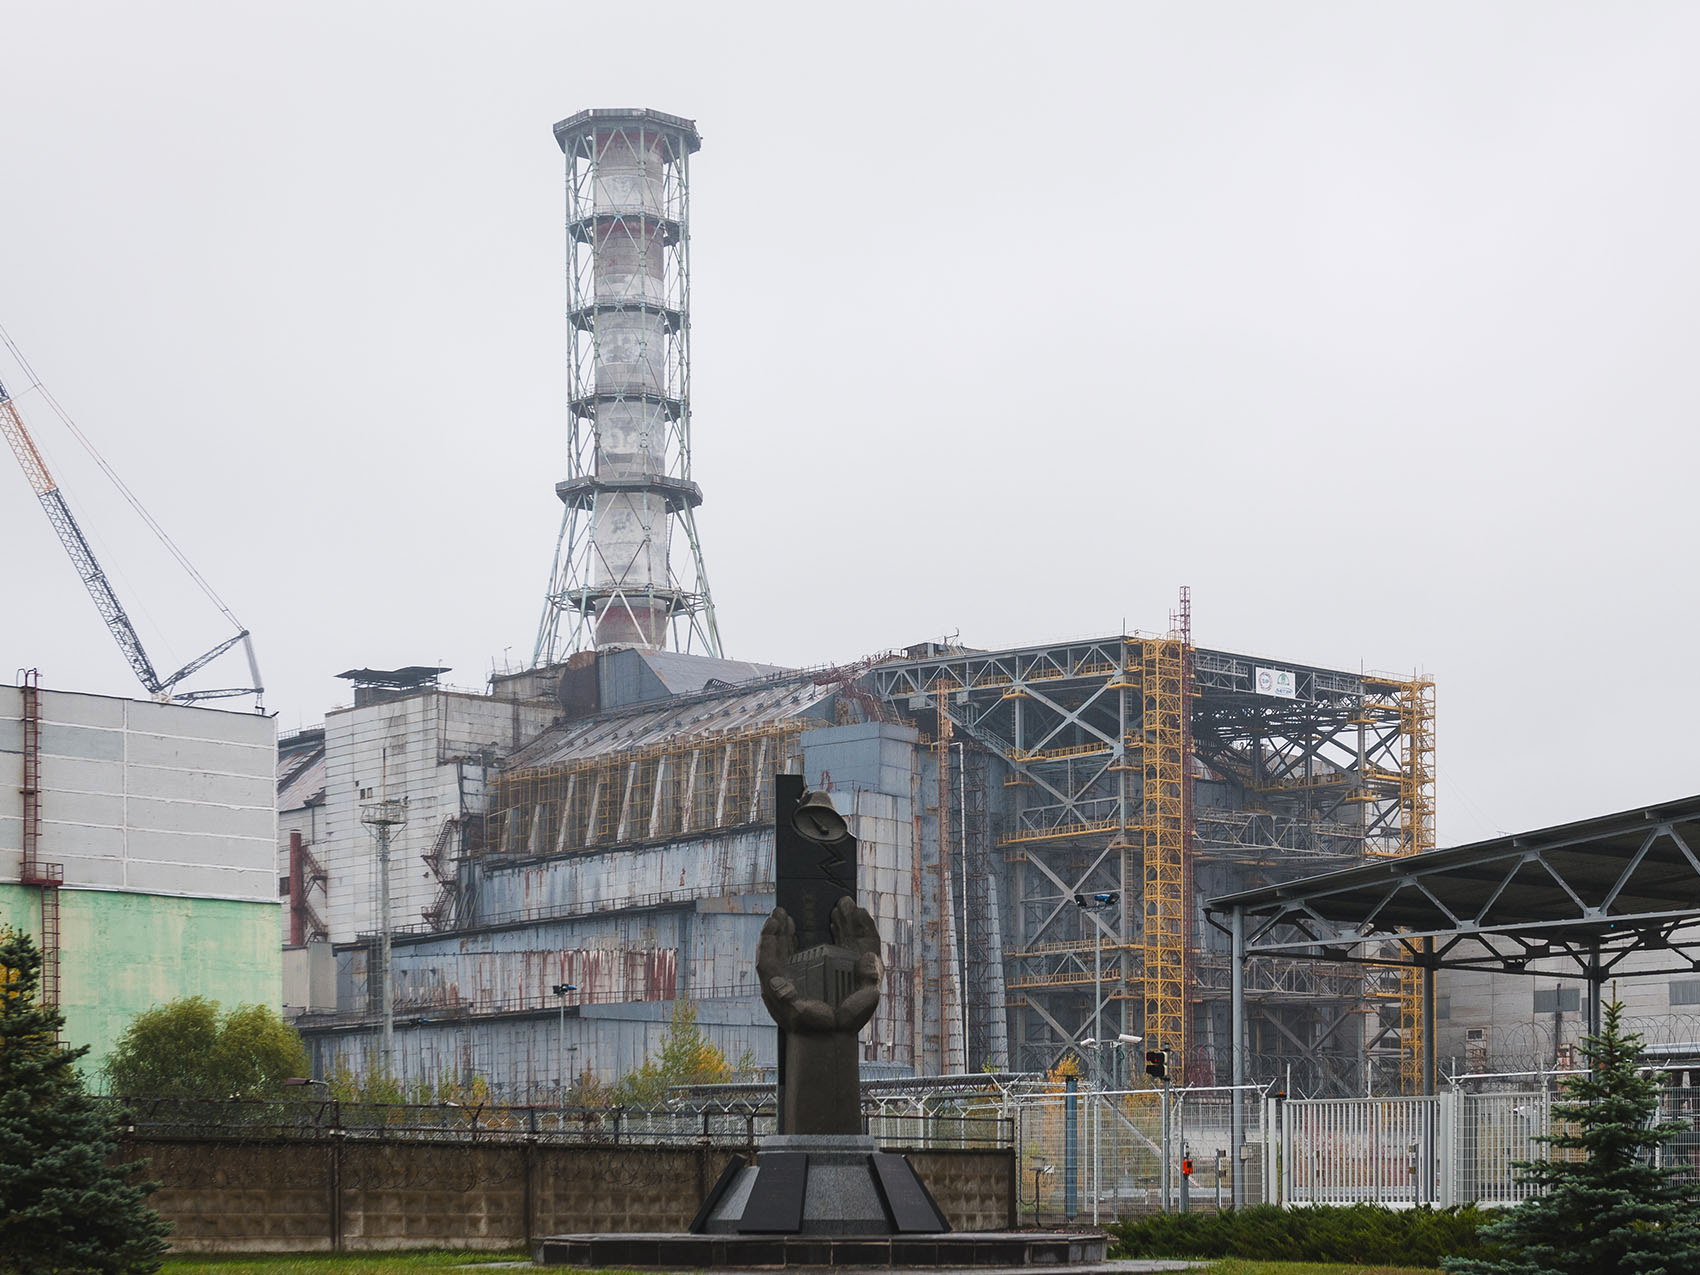 chernobyl-could-be-ukraines-answer-to-energy-independence